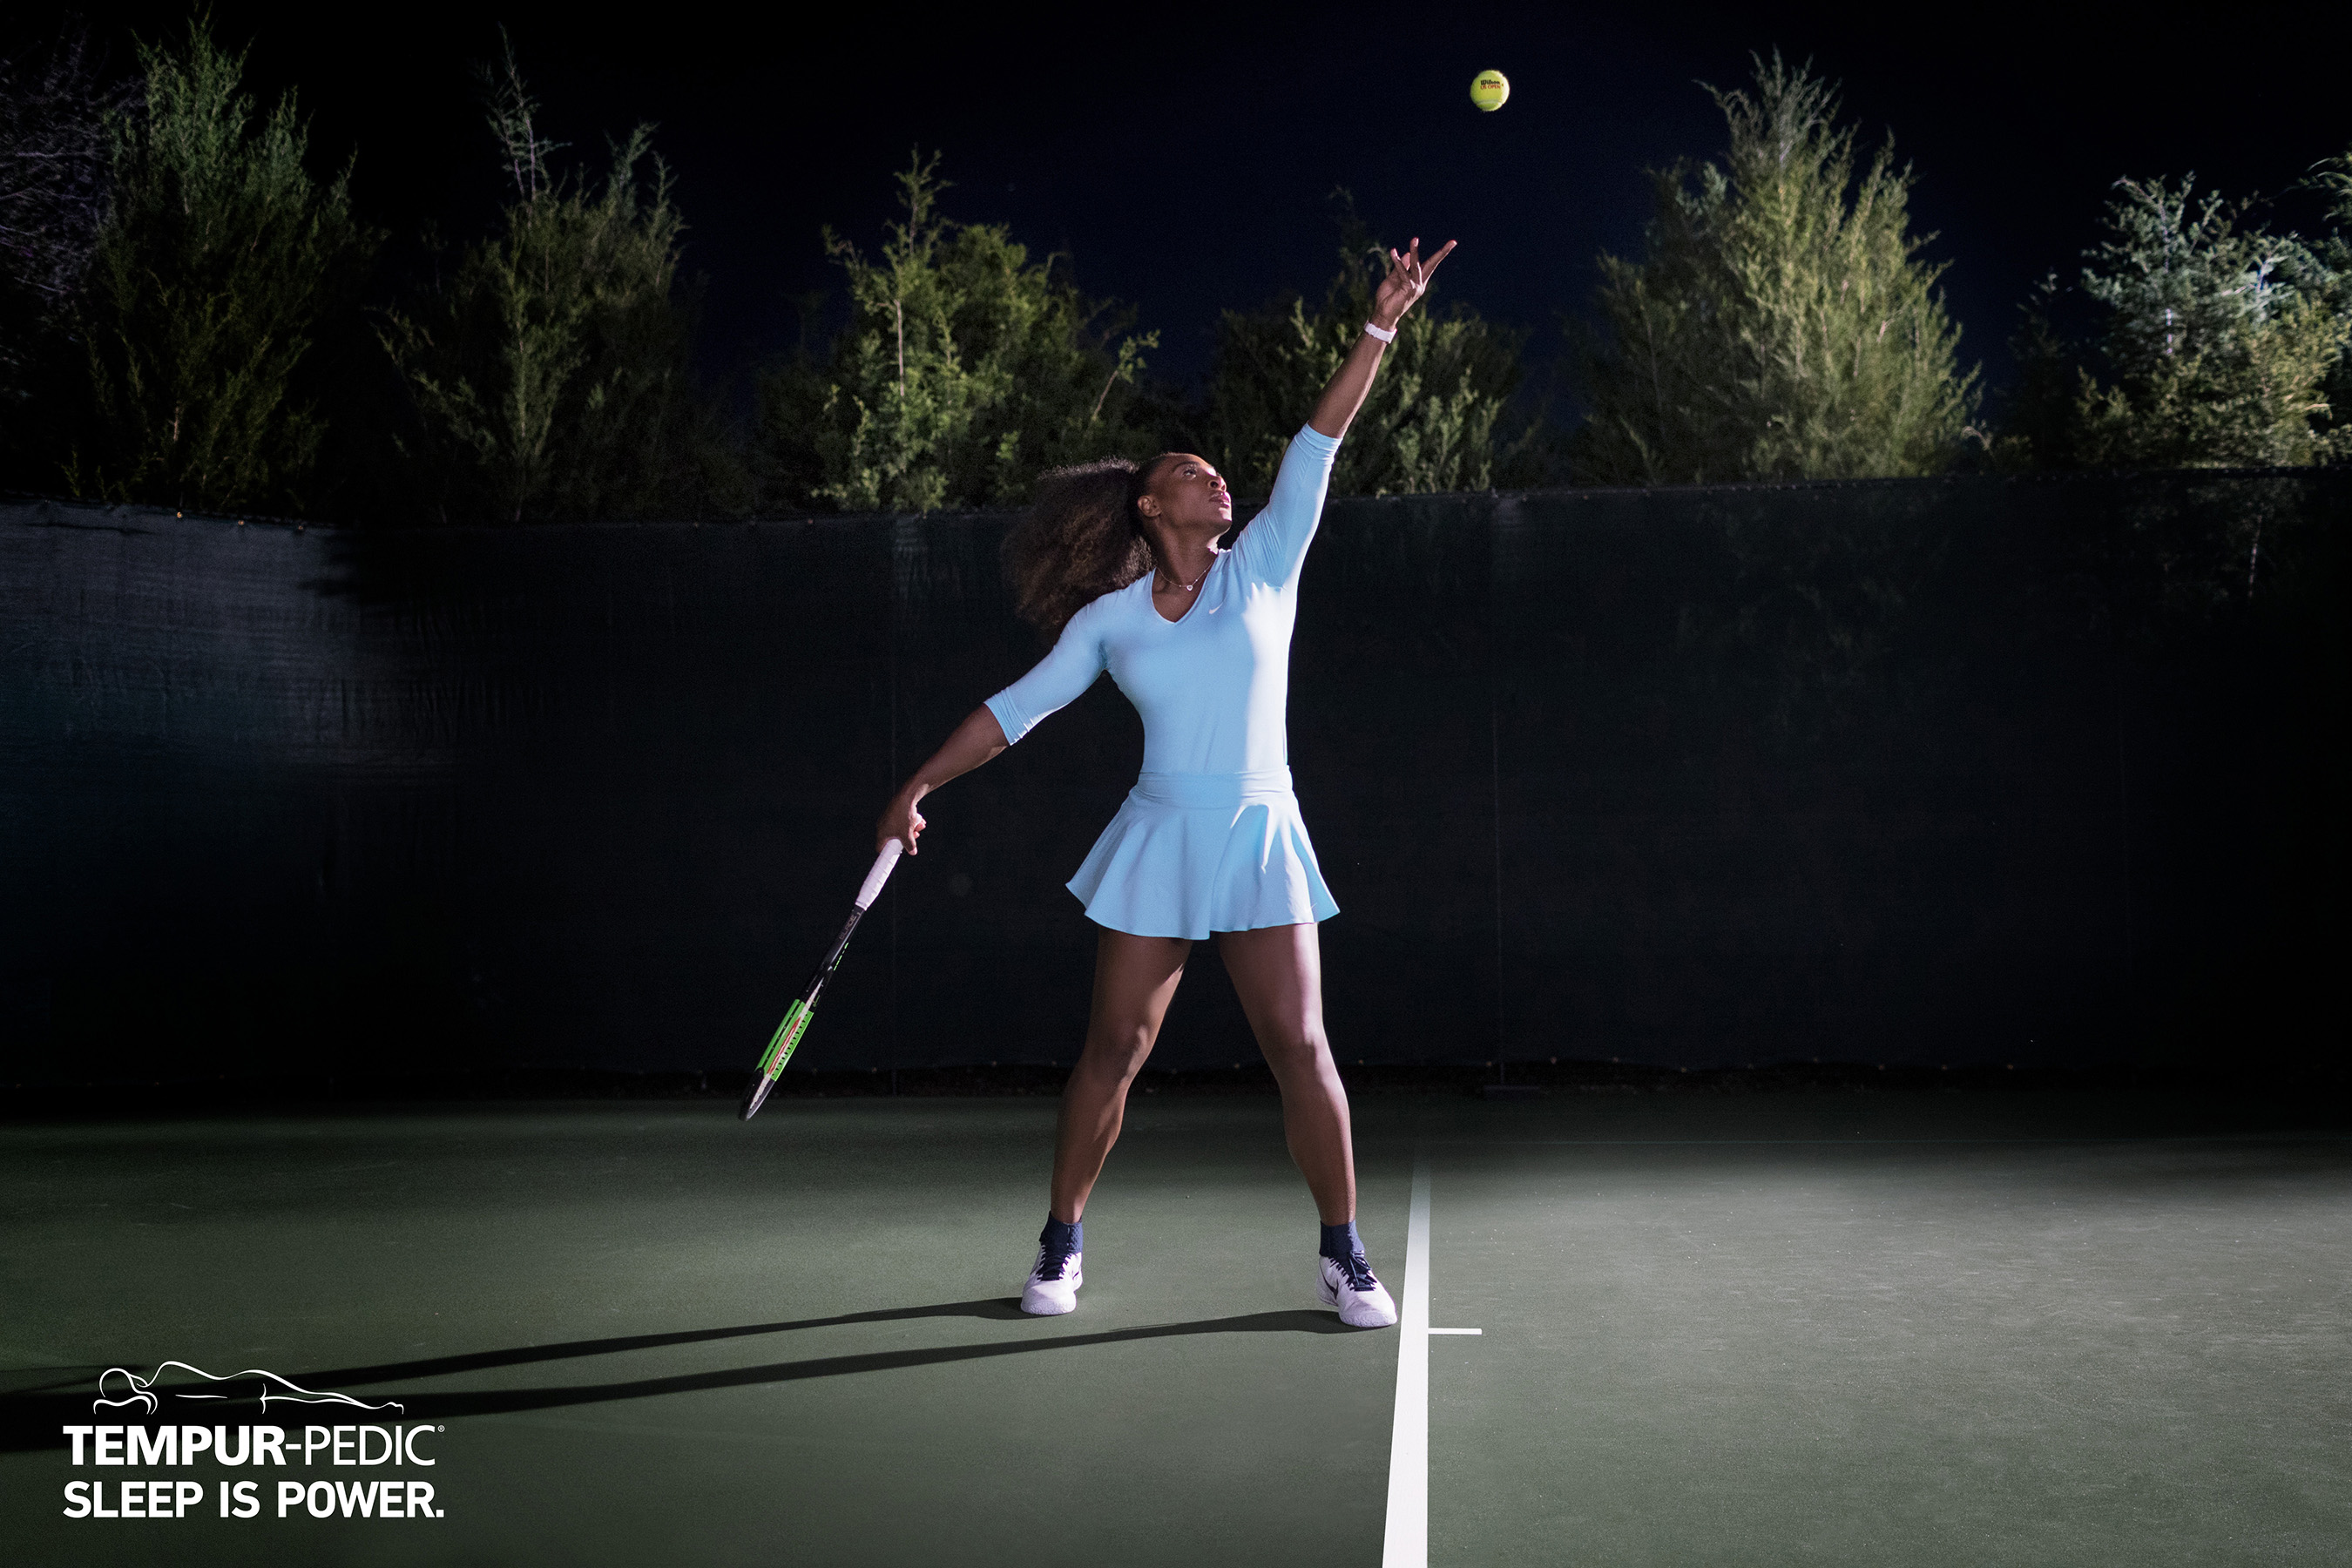 Tempur-Pedic's collaboration with Serena Williams, a Tempur-Pedic owner for more than a decade, is part of an integrated marketing campaign that features the tennis great and highlights how Tempur-Pedic beds adapt to your unique body shape, weight and temperature to give you life-changing sleep every night.